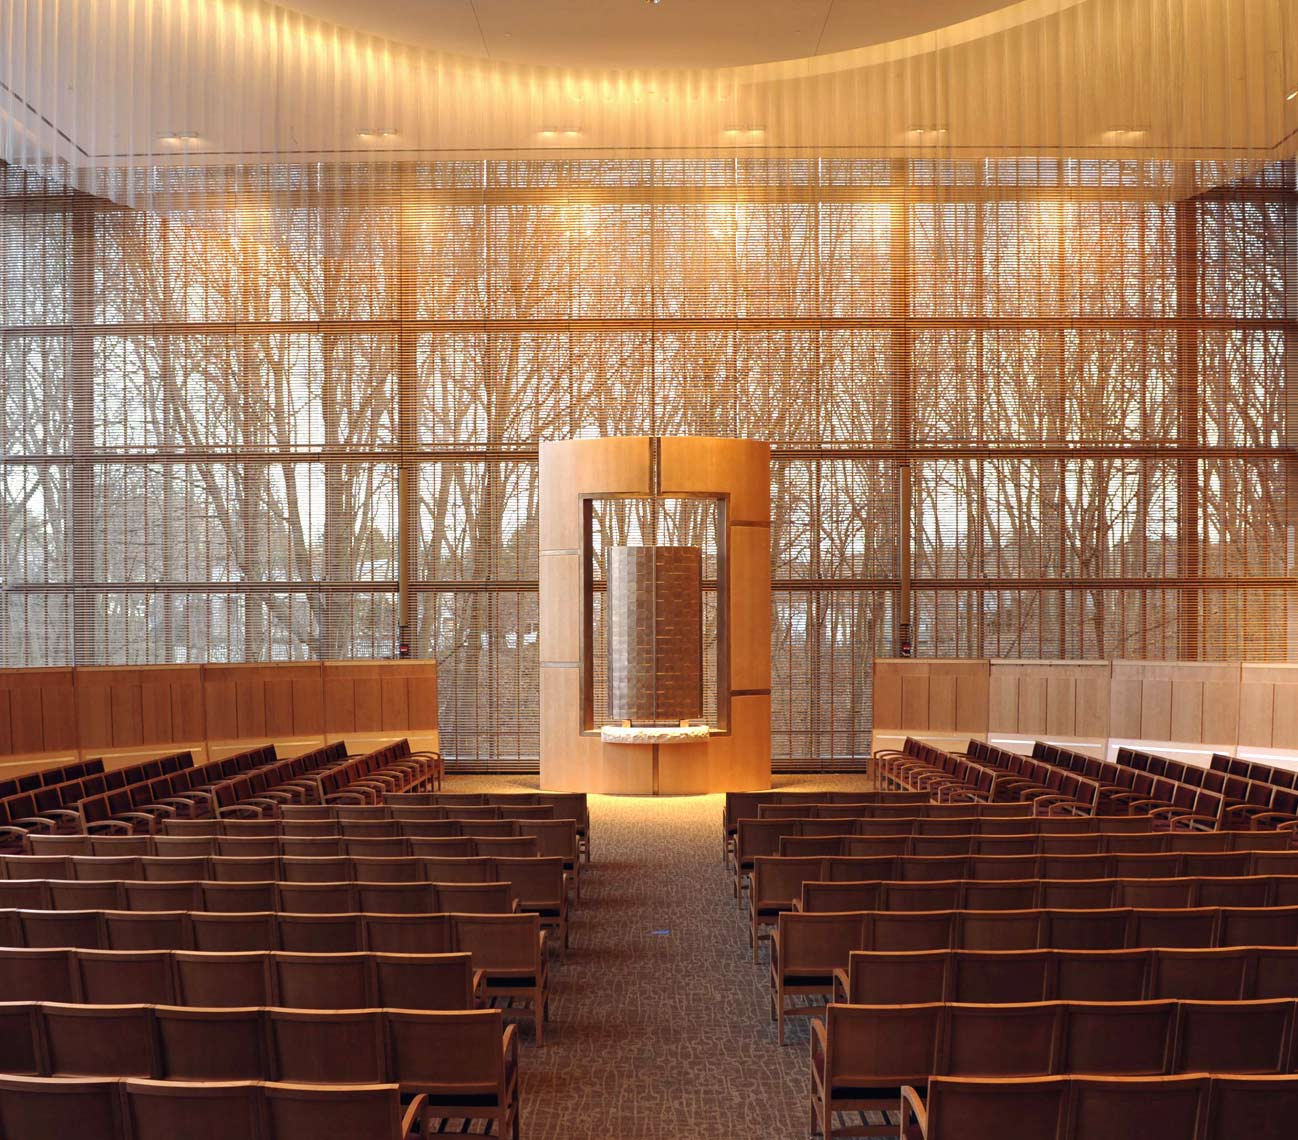 The Ark by Peter Diepenbrock for the Sanctuary at The Temple Beth Elohim